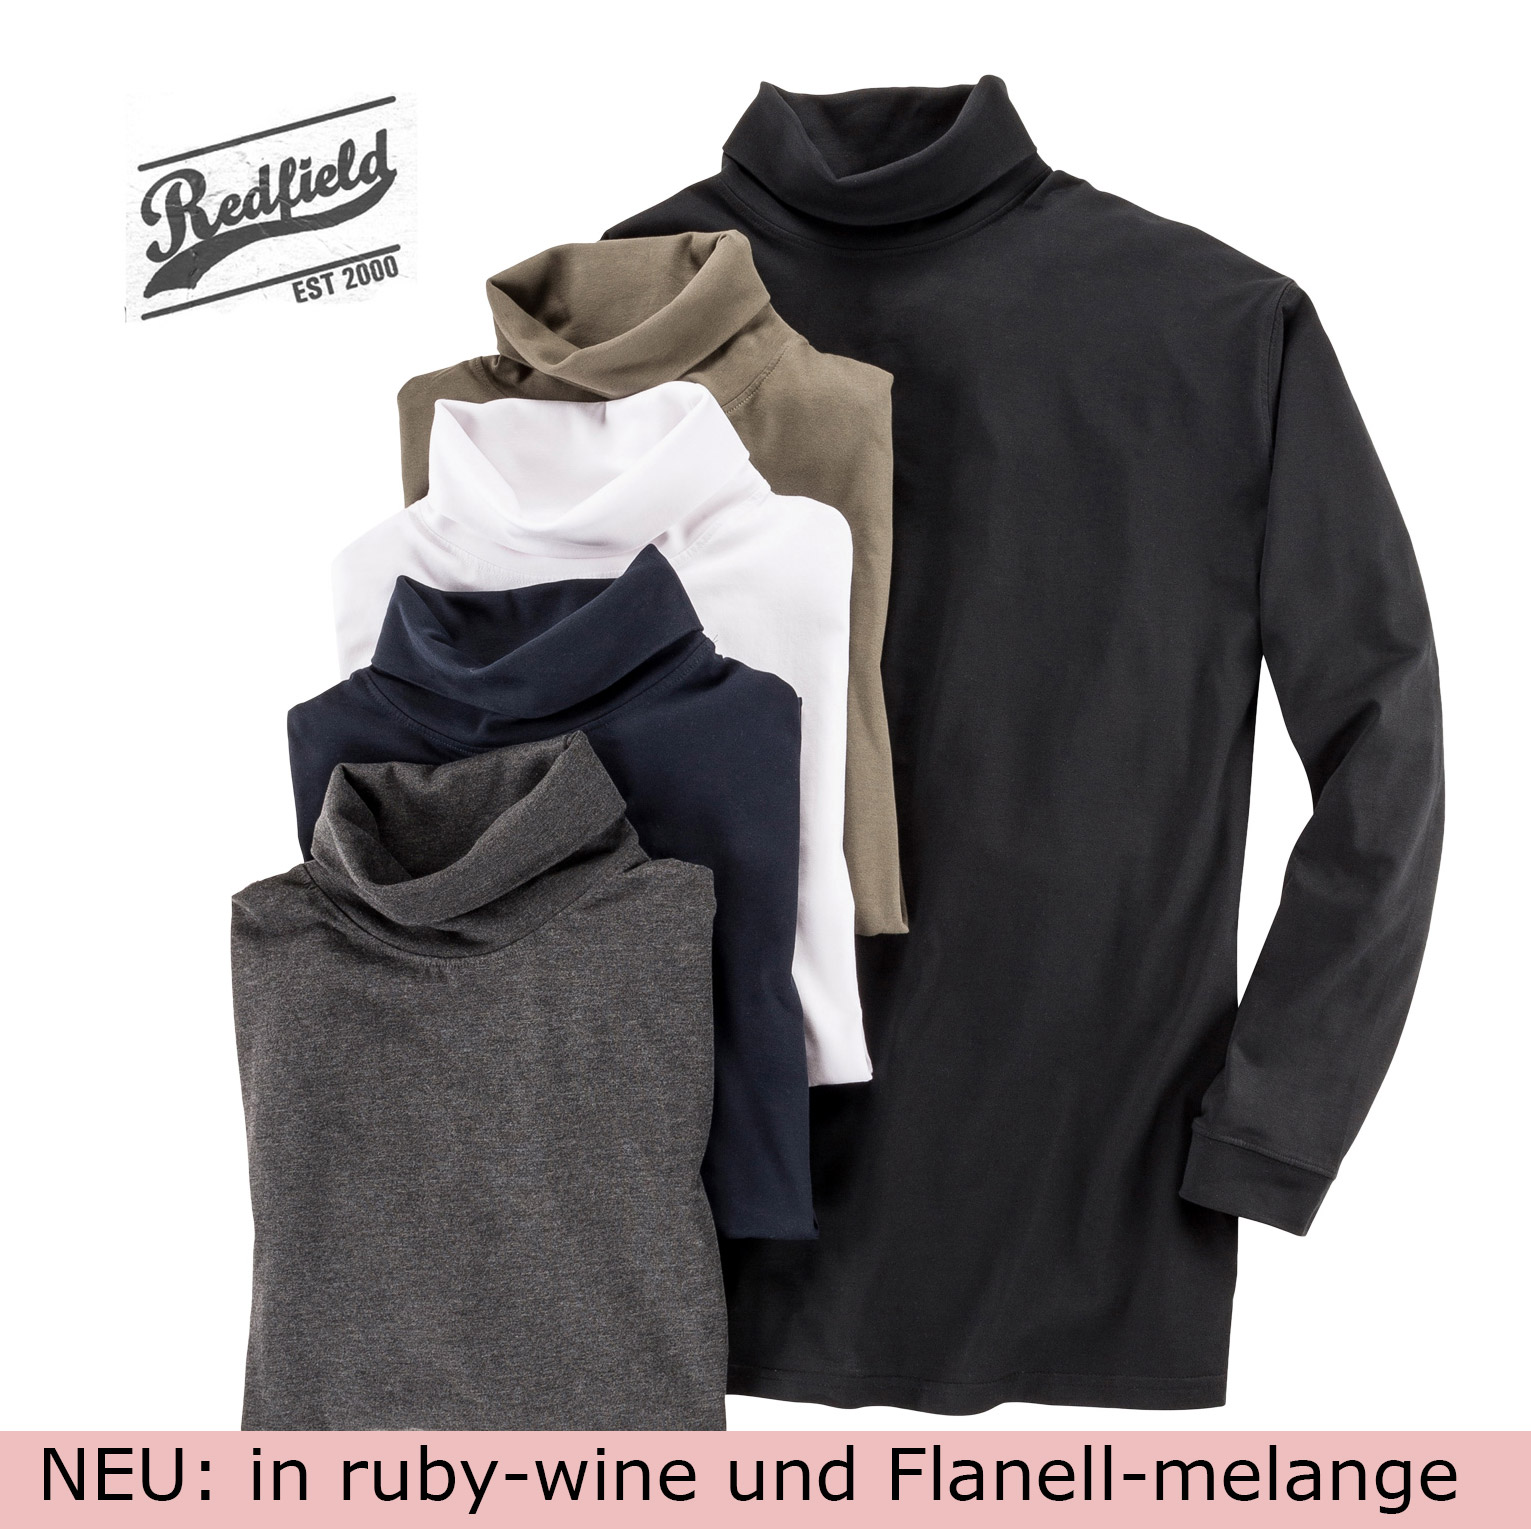 redfield unterzieh rolly longshirts freizeitmode over der bergr en online shop. Black Bedroom Furniture Sets. Home Design Ideas